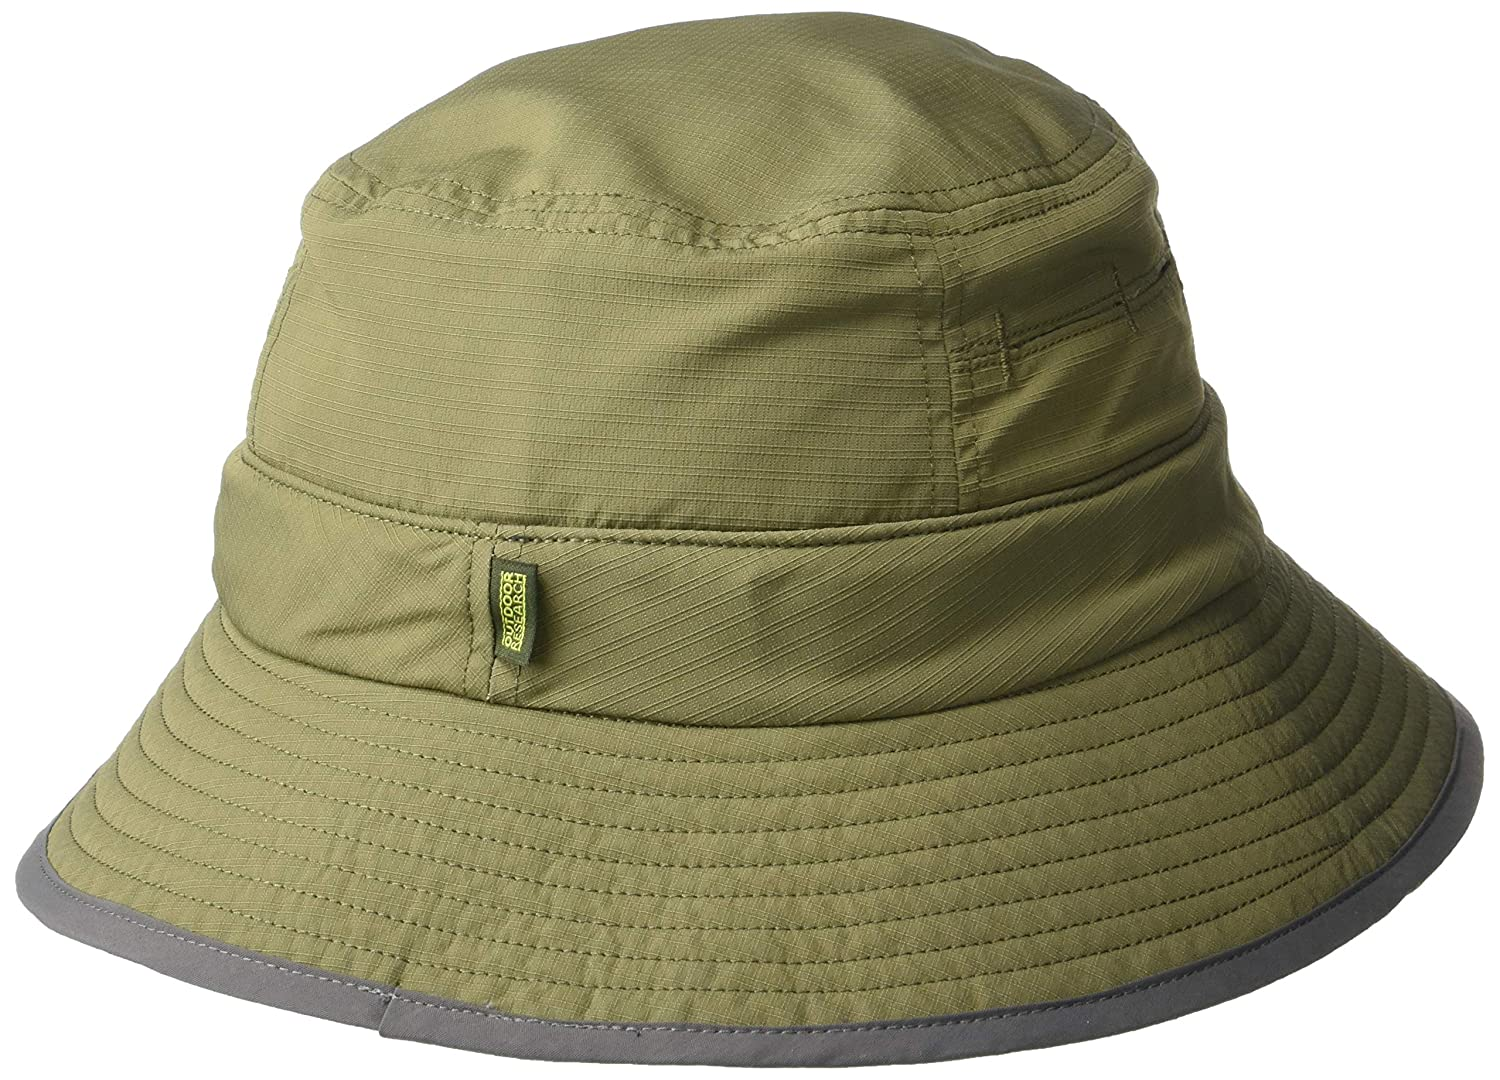 74eafa5e561 Amazon.com  Outdoor Research Sombriolet Sun Hat  Clothing